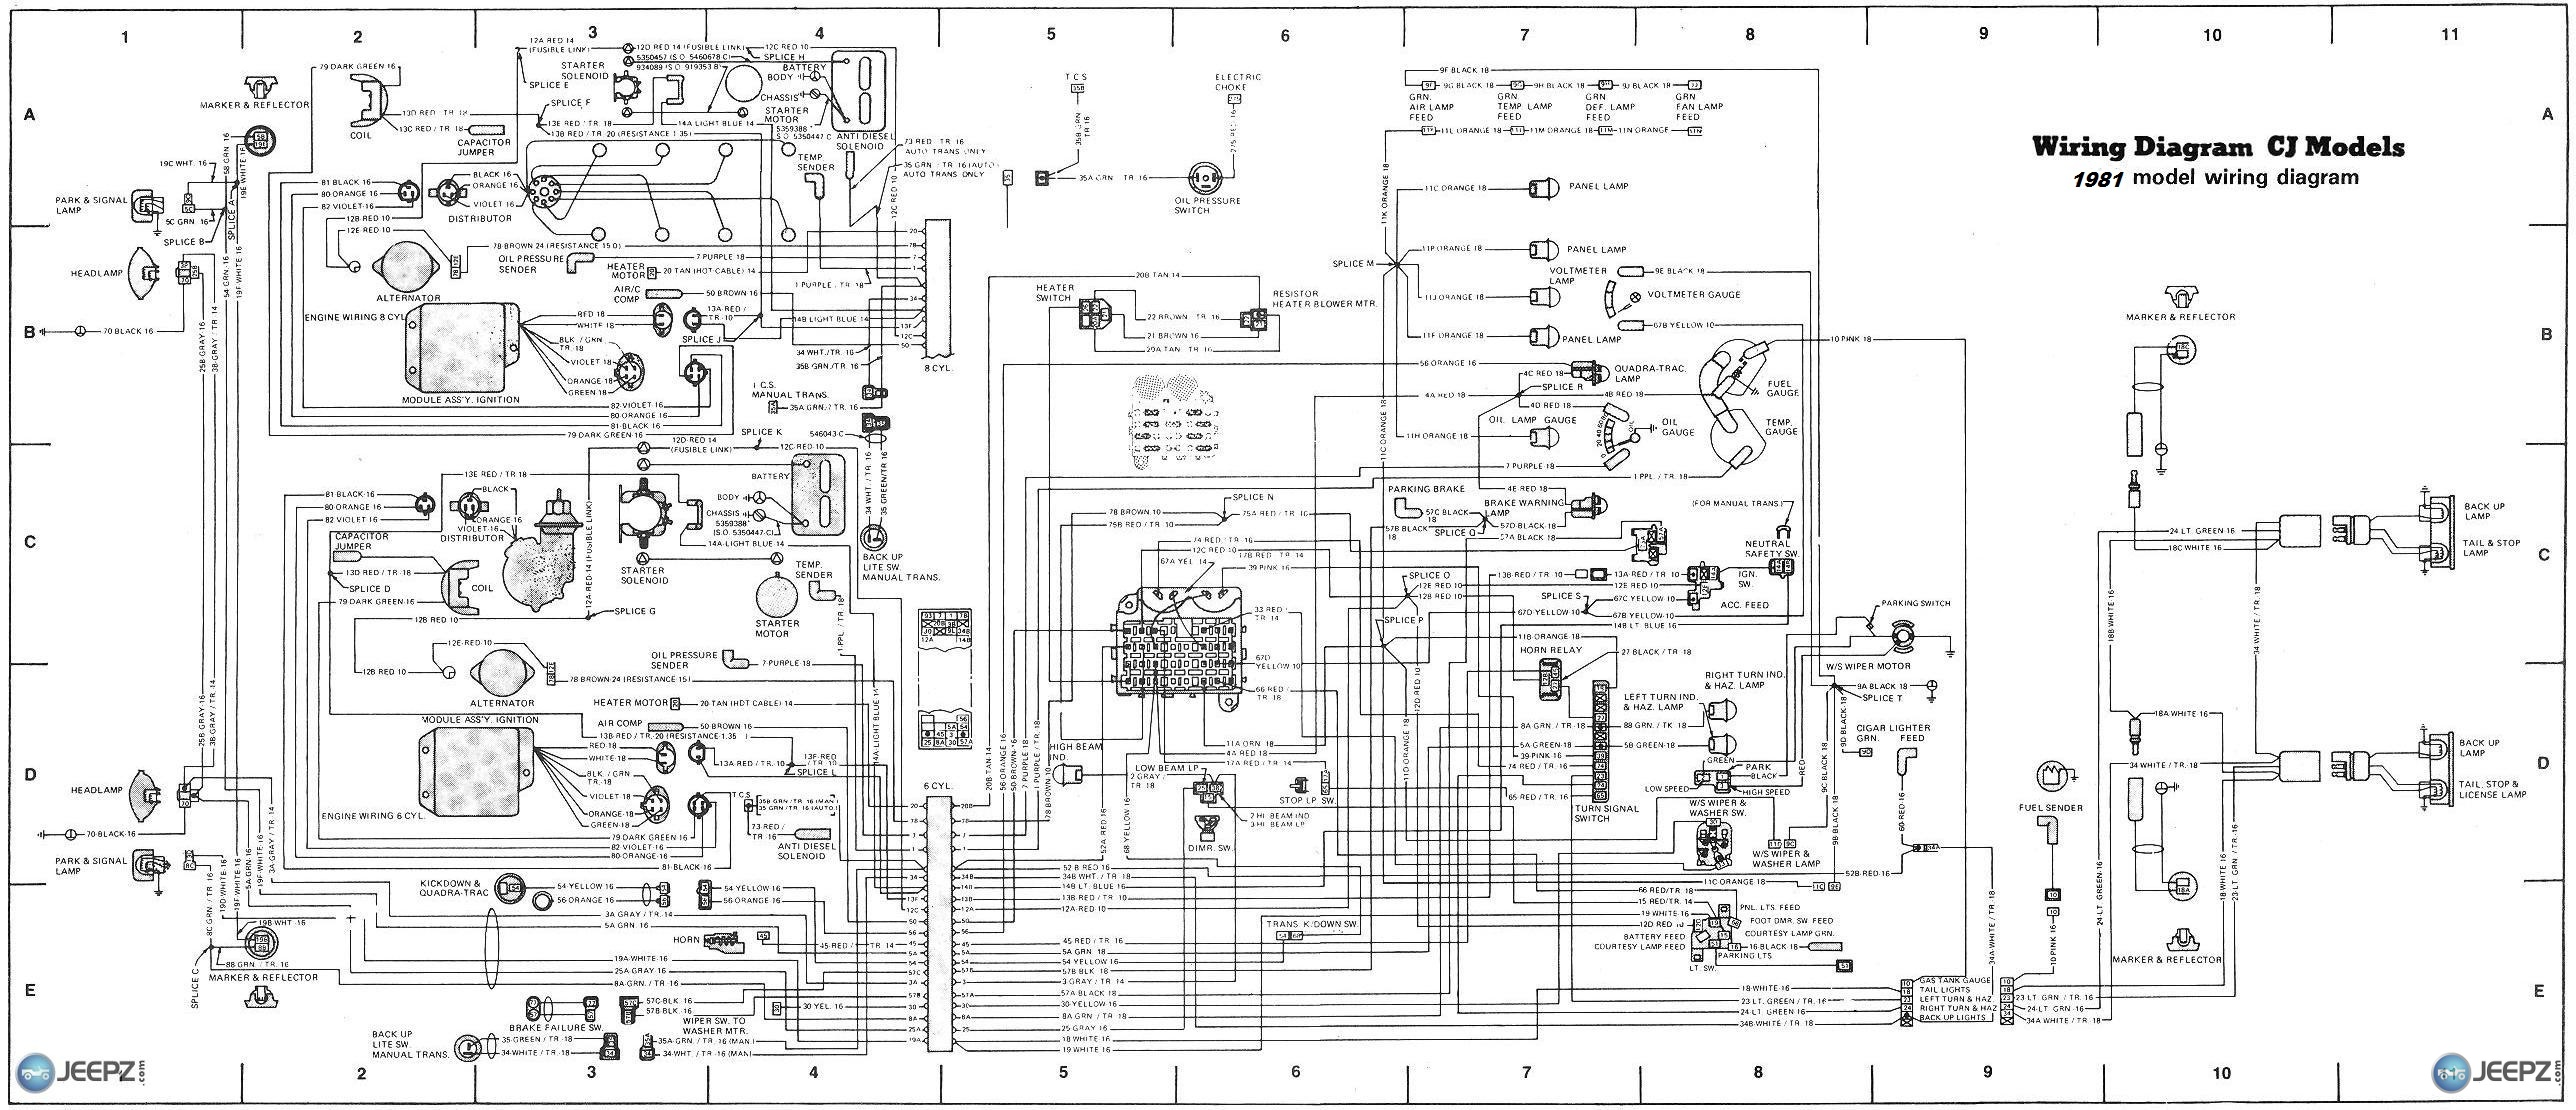 04 Colorado Wiring Diagram Simple Guide About Hot Wire Foam Cutter Design Cj 7